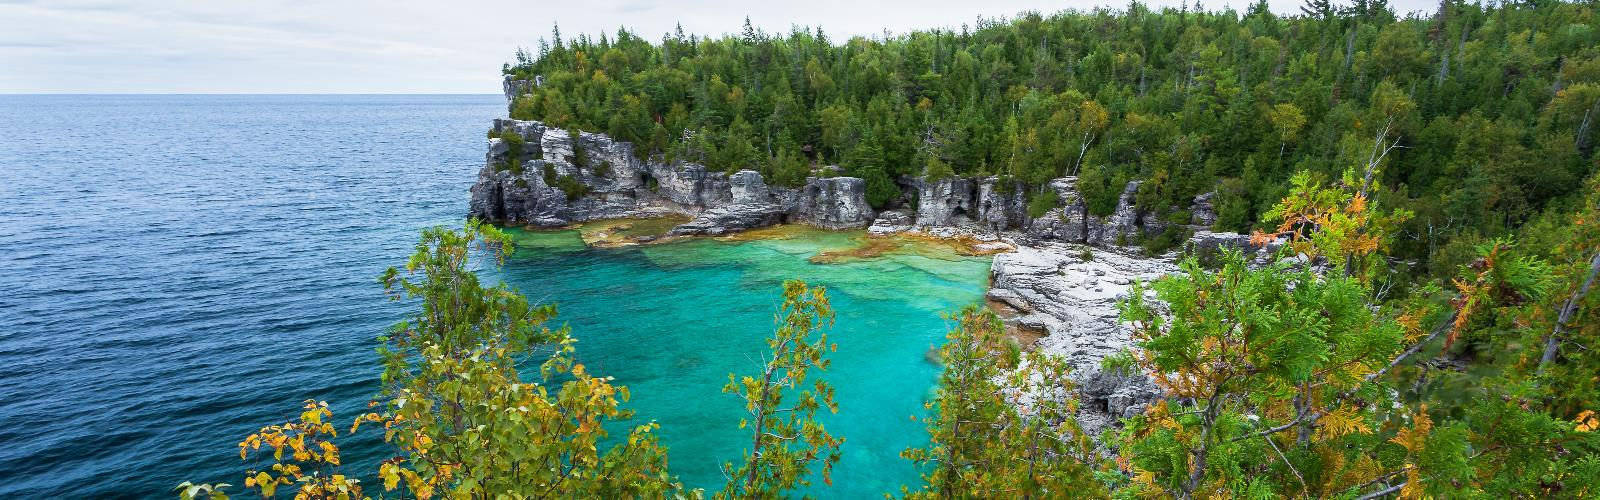 Bruce Peninsula National Park High Point, Ontario - Hiking